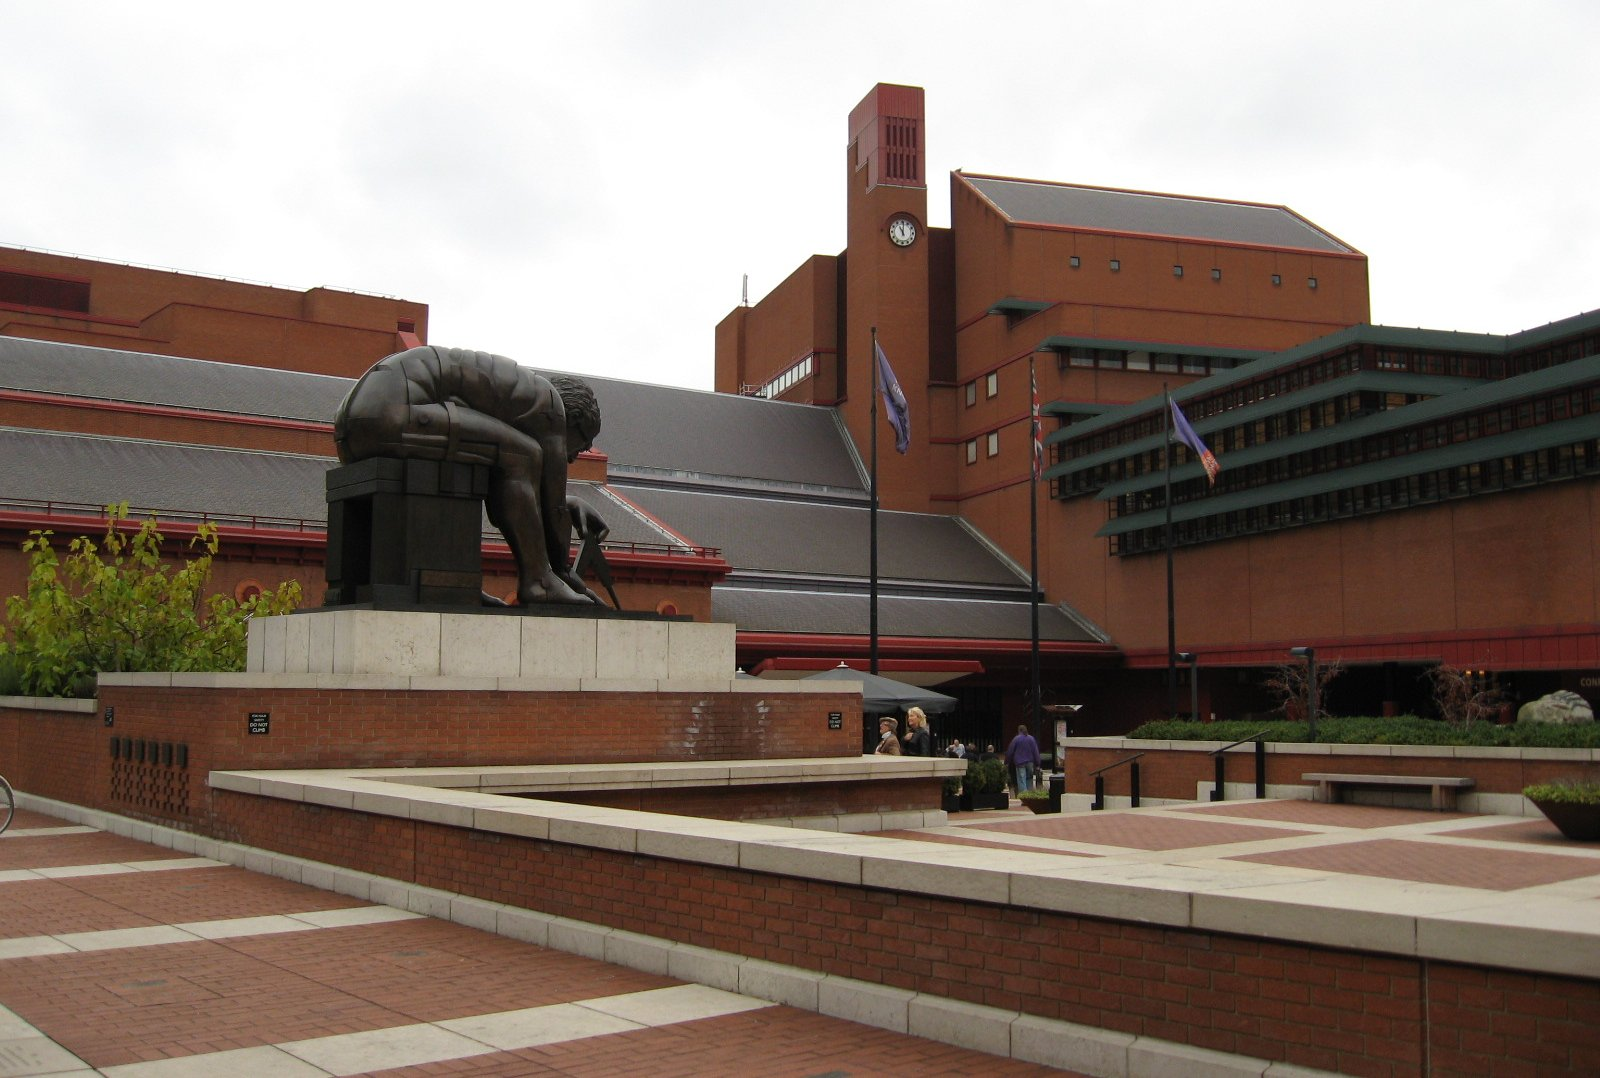 BRITISH LIBRARY IMAGES